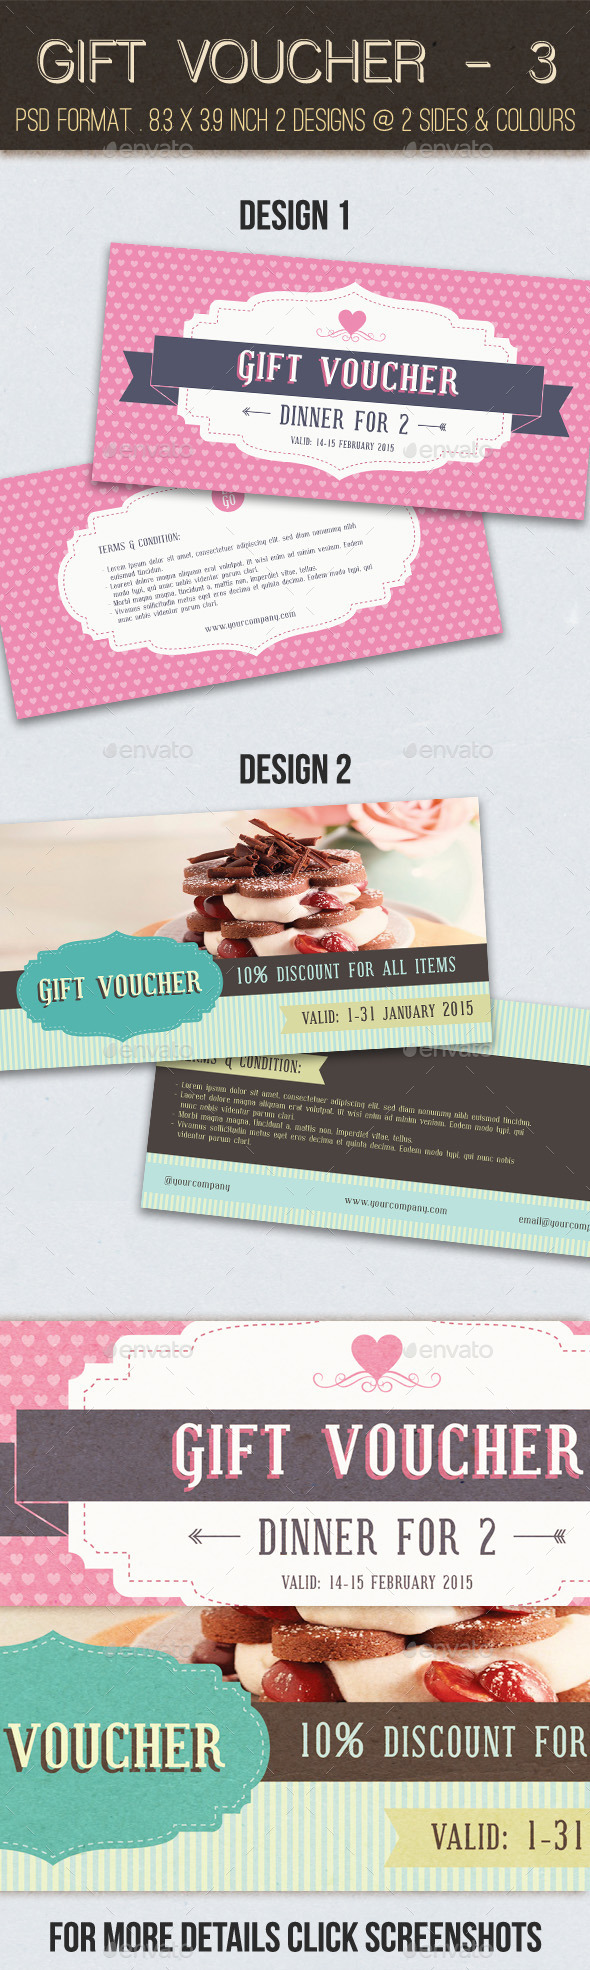 Gift Voucher - 3 - Loyalty Cards Cards & Invites